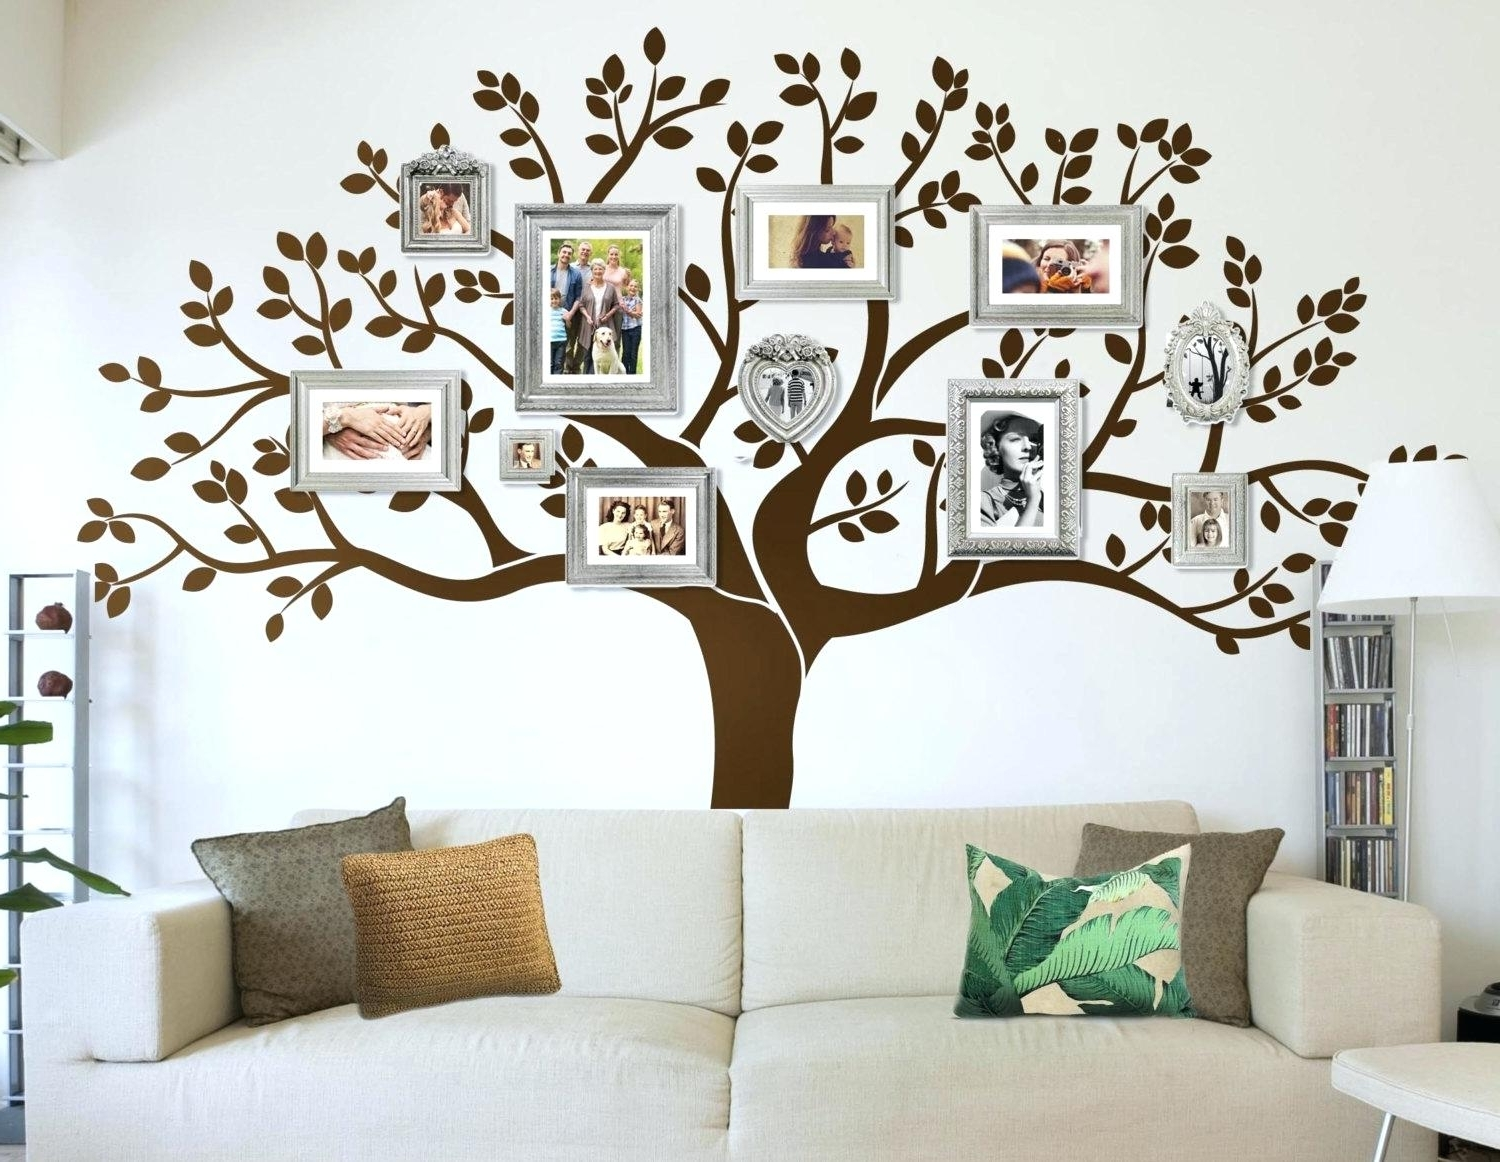 Family Wall Art Decals Simple Design Family Tree Decor For Wall Regarding Latest Family Wall Art Picture Frames (Gallery 10 of 15)